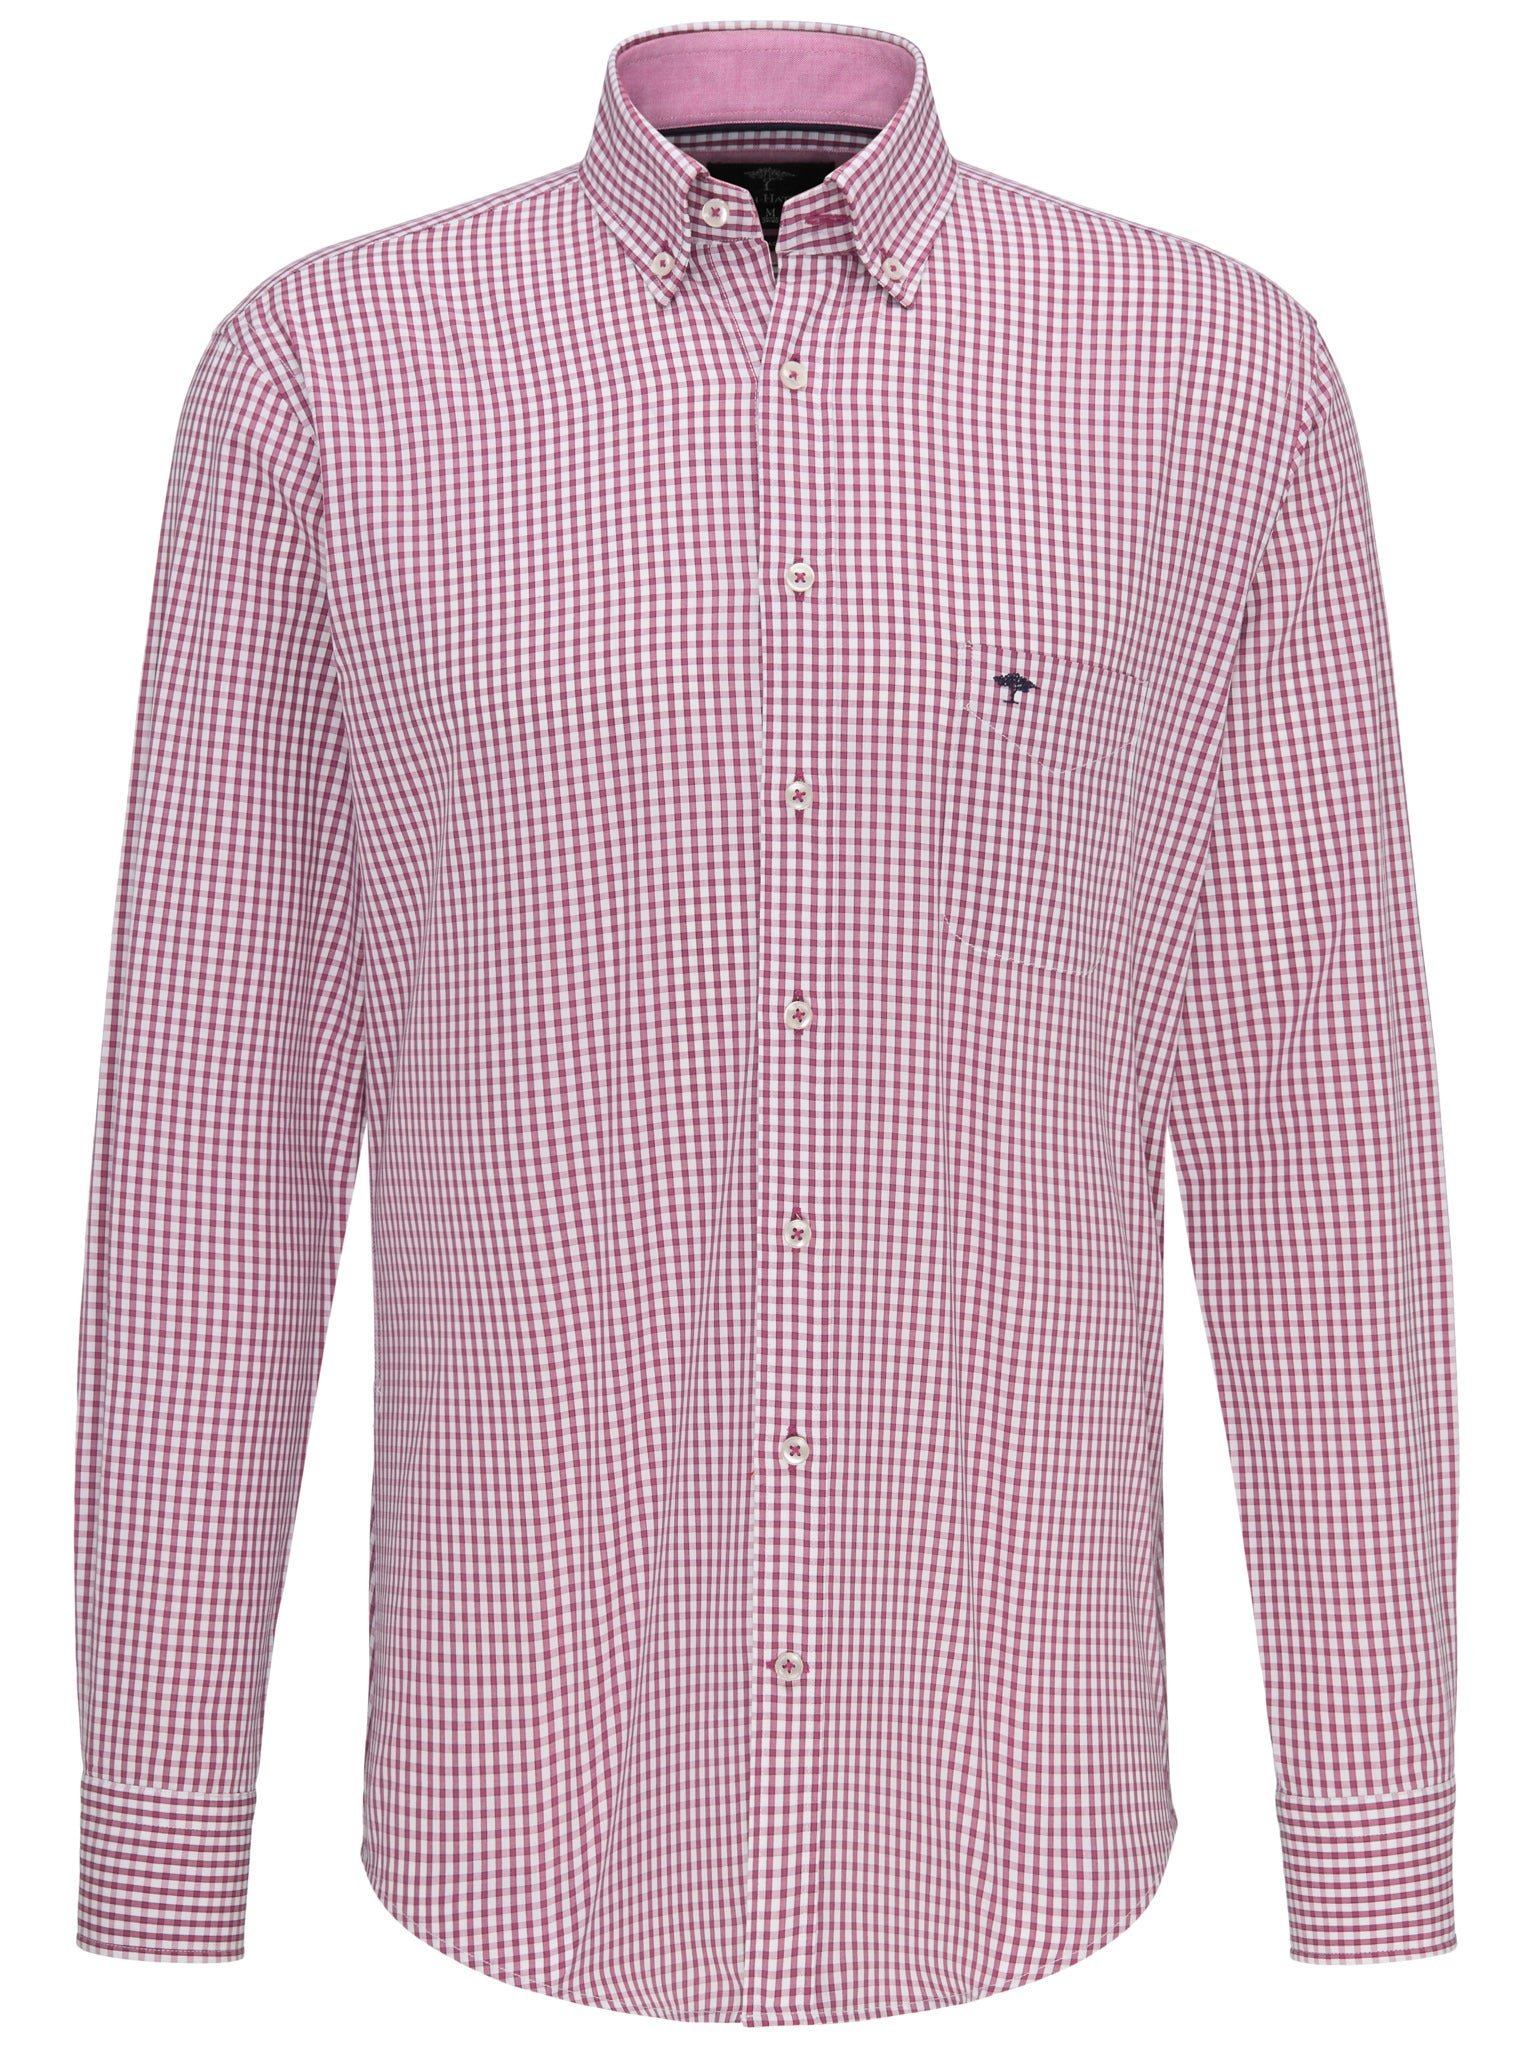 Fynch Hatton Summer Check Long Sleeve Shirt for Men in Softberry